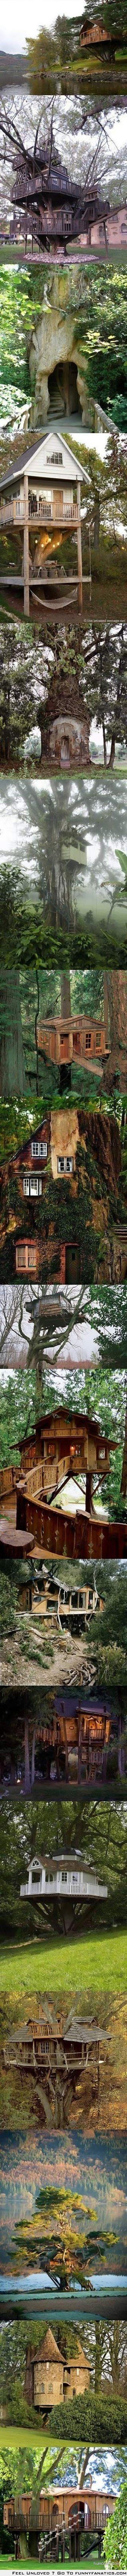 Amazing tree houses.  Even as an adult they look like so much fun!!!